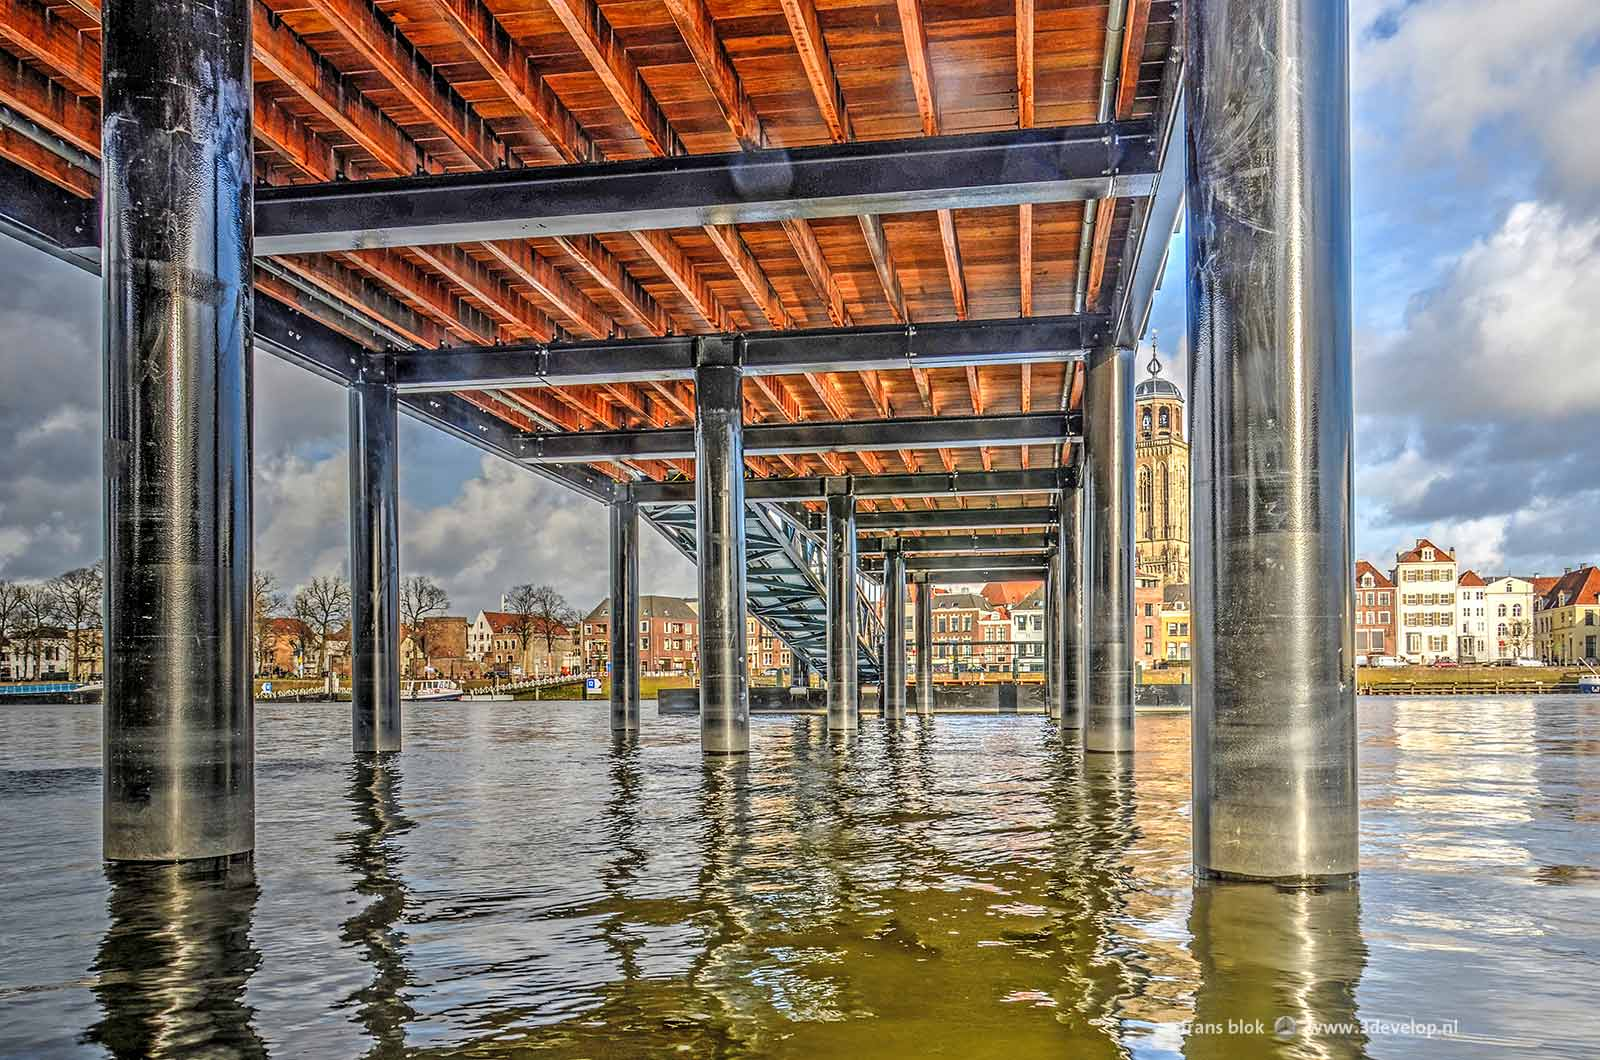 Looking under the new jetty/pontoonbridge at the Worp in Deventer with in the background the skyline of the city with Saint Lebuinus Church